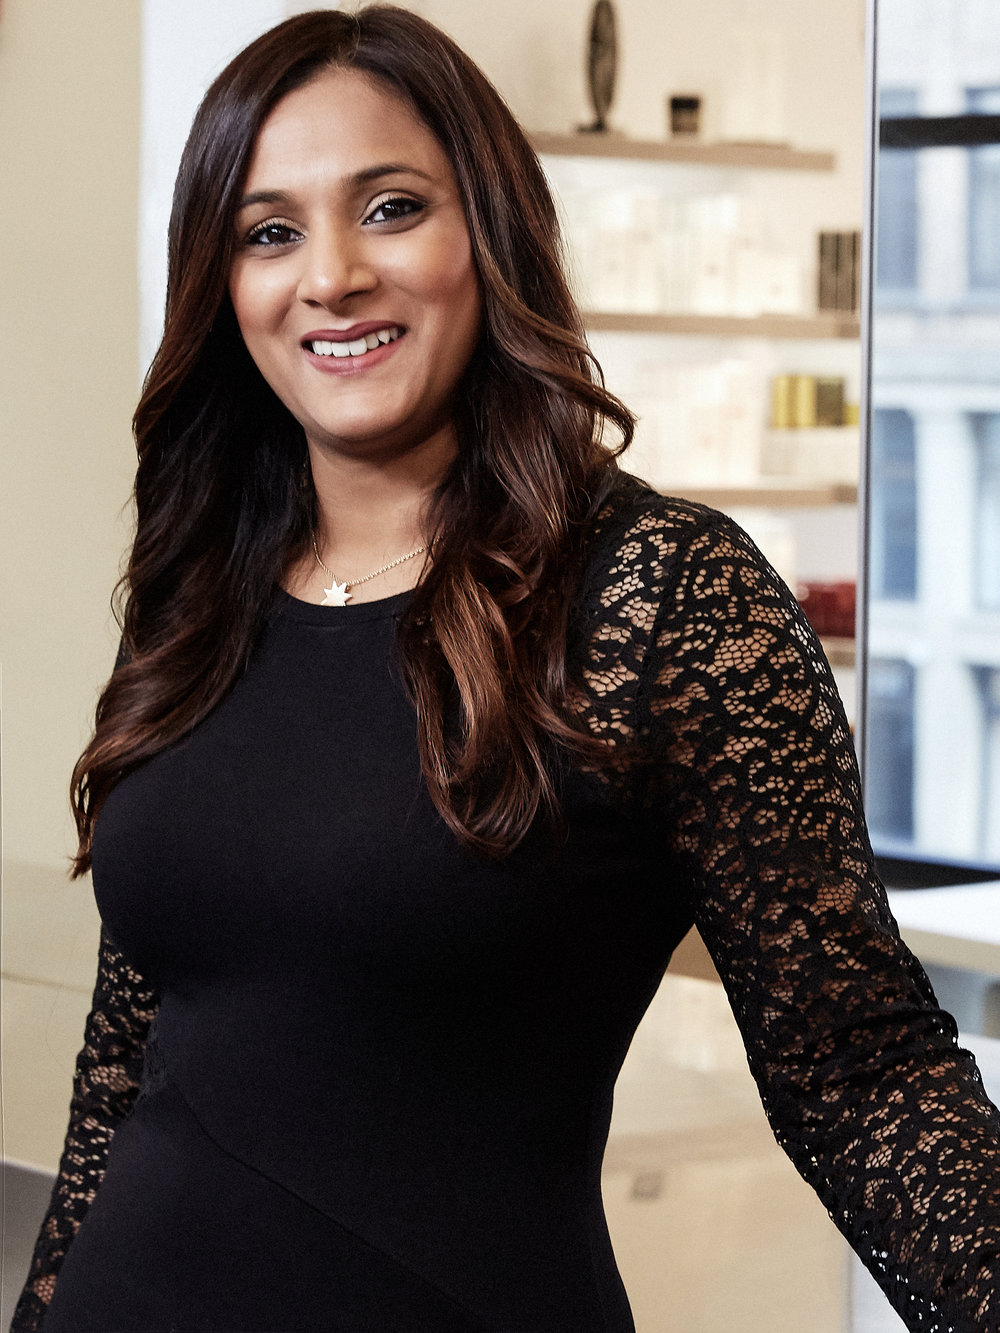 ANEESA   Aneesa is a senior colorist who started working in the beauty industry 15 years ago, when she walked through the doors of Butterfly Studio Salon. After 15 years in the industry, Aneesa still loves making both existing and new clients feel good about themselves. Over the years, she has earned praise for her work creating natural, dimensional brunettes. This is one of Aneesa's favorite techniques because it works for someone with a busy lifestyle who may not have time to come into the salon every 4-6 weeks.   @aneesadial_colorist